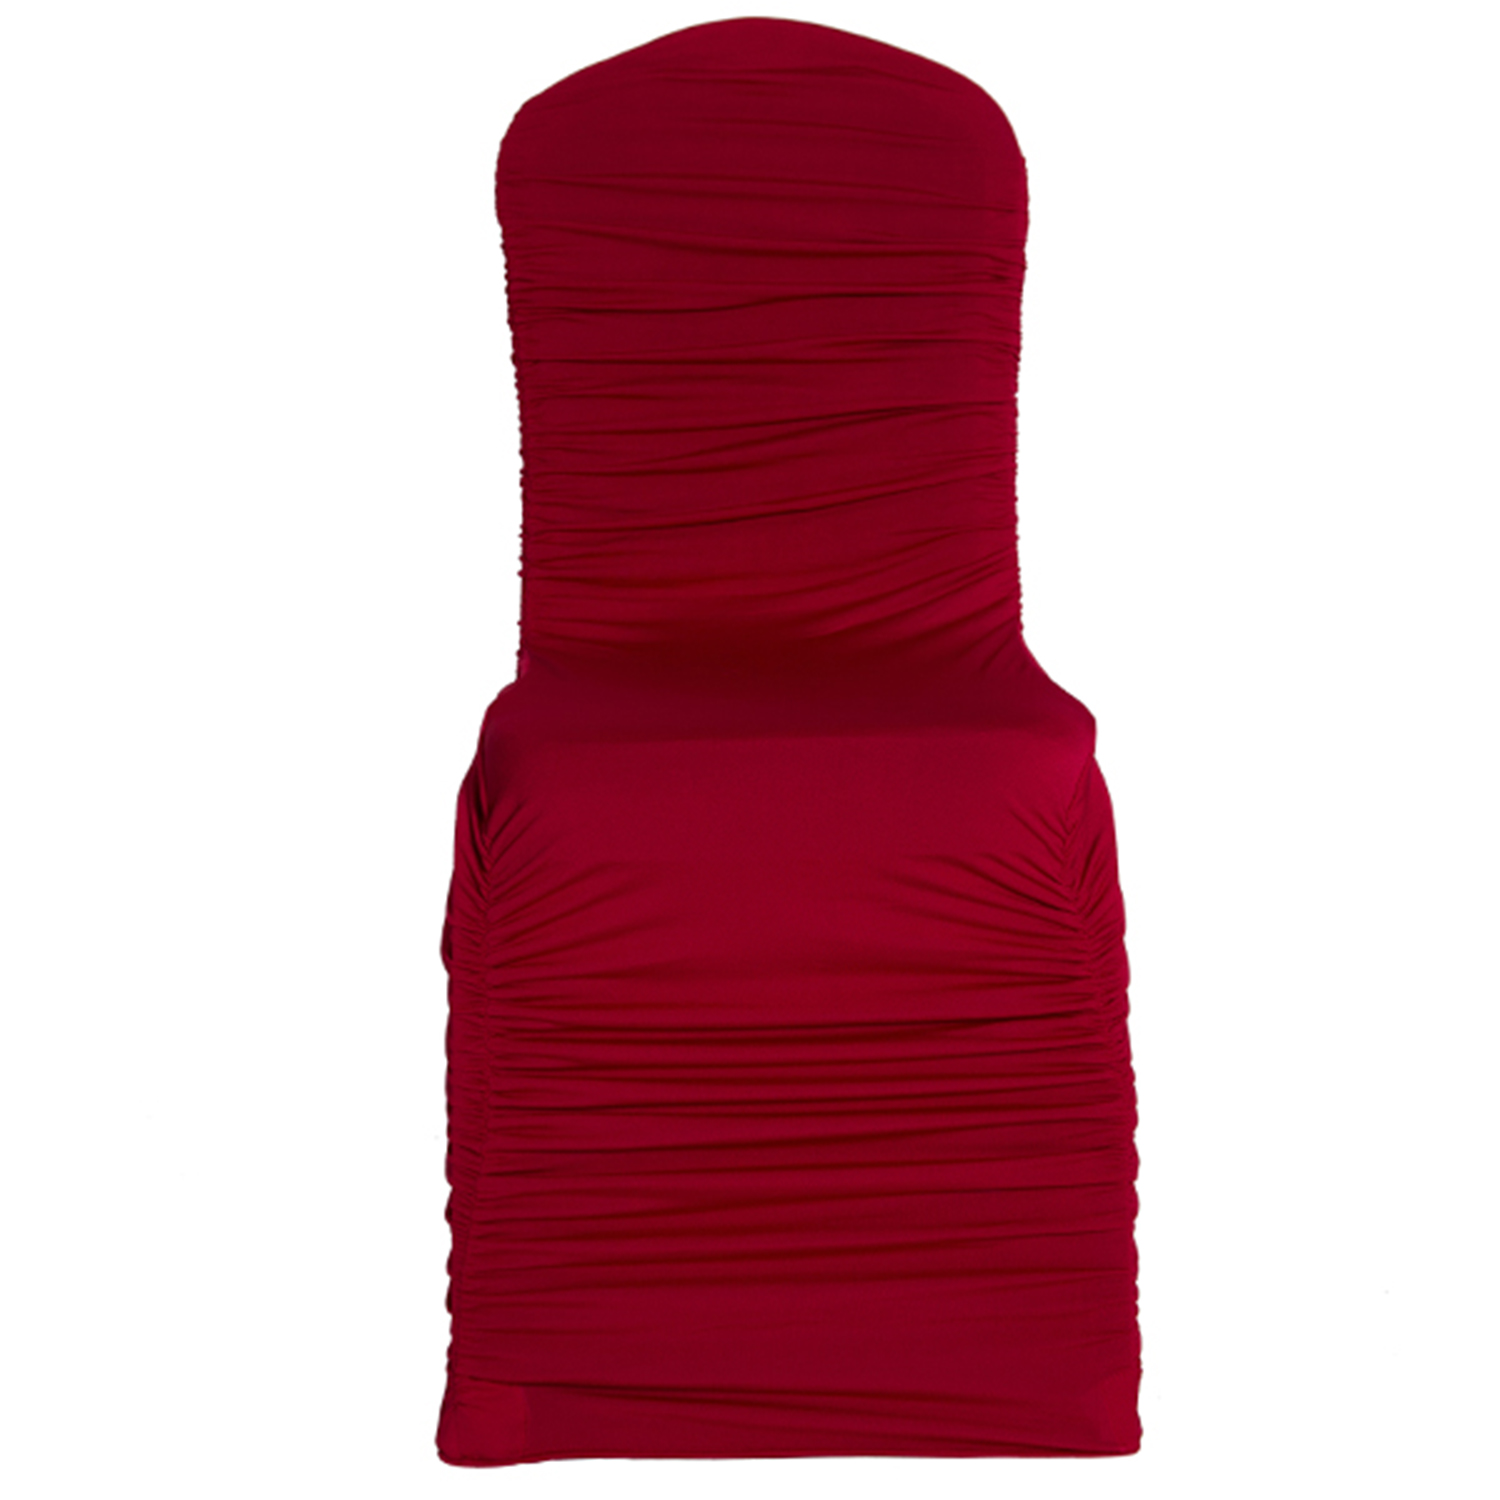 ruched spandex chair cover folding bed red wedding covers for sale